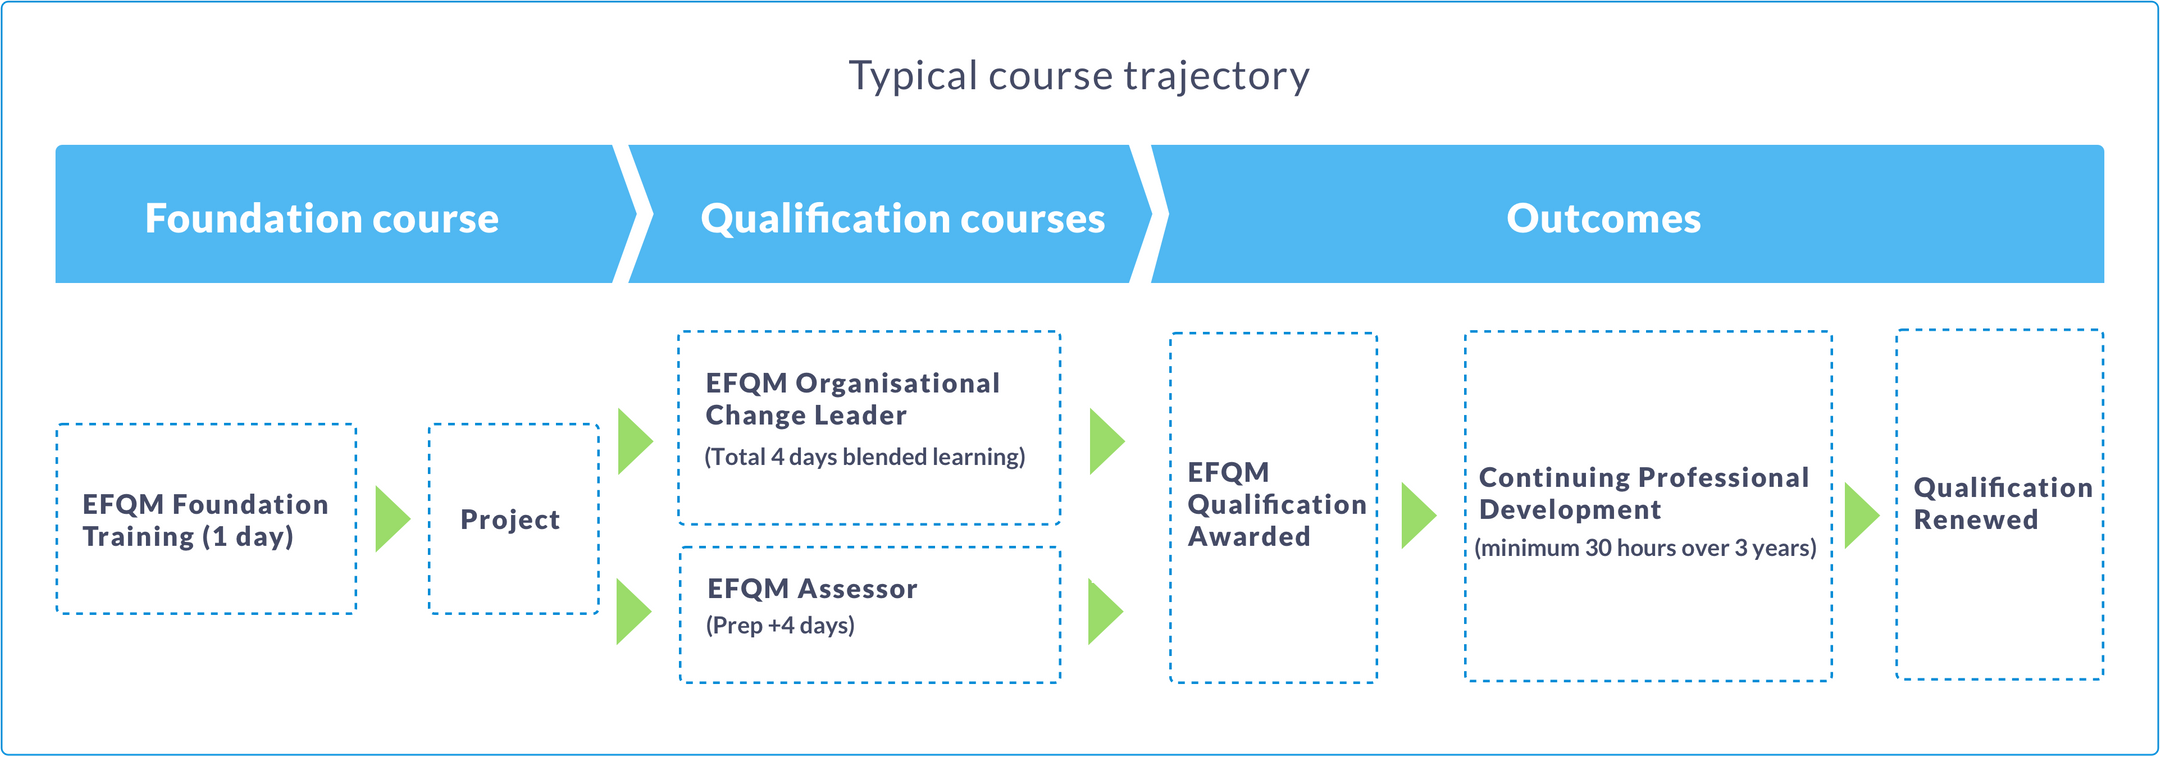 EFQM_Typical Course Trajectory